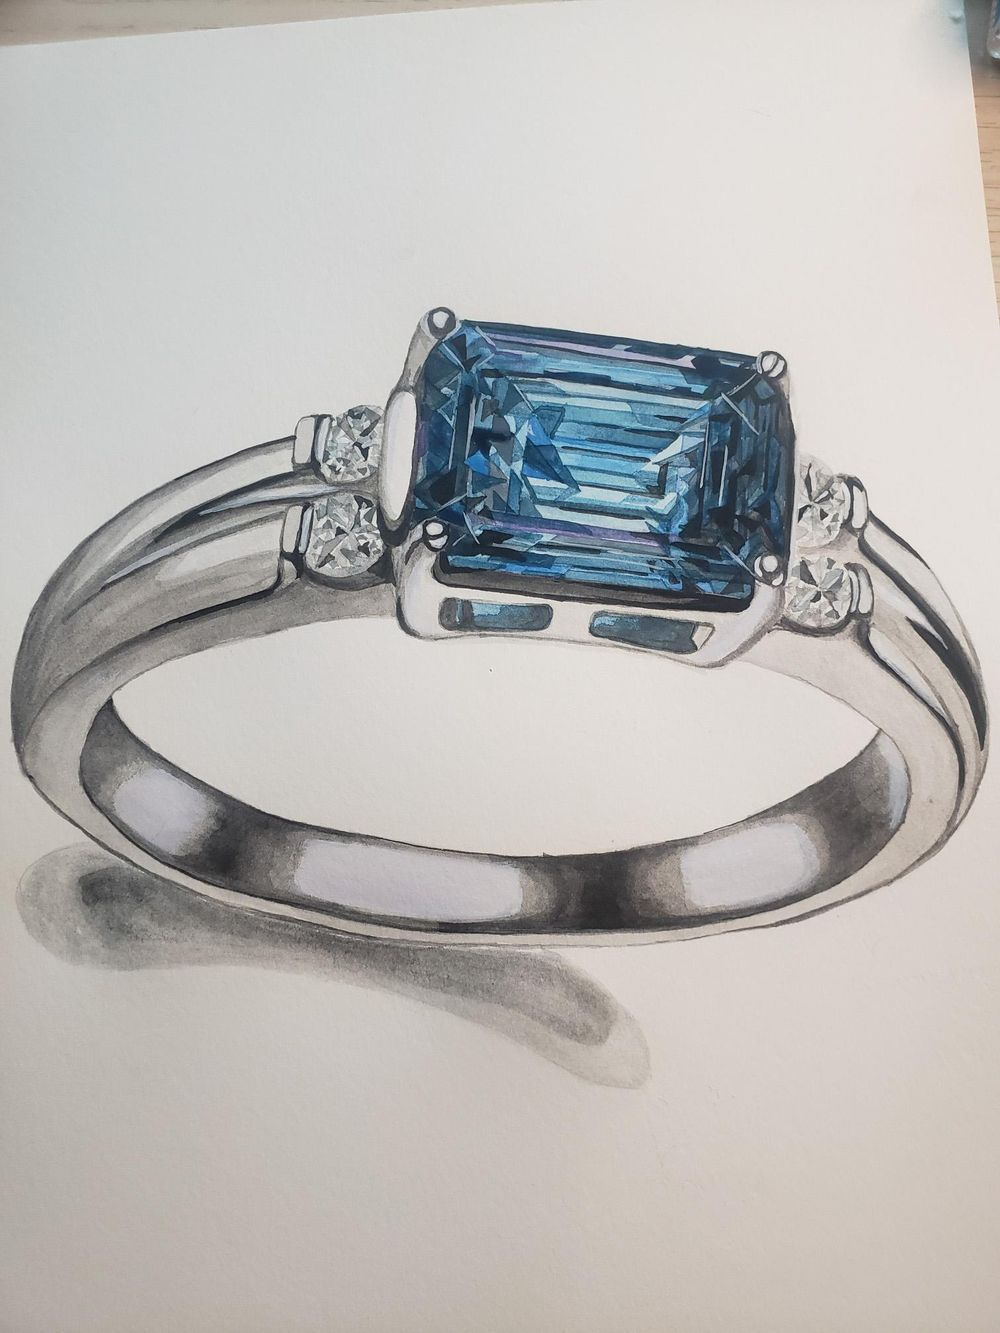 gem stone proyect - image 2 - student project